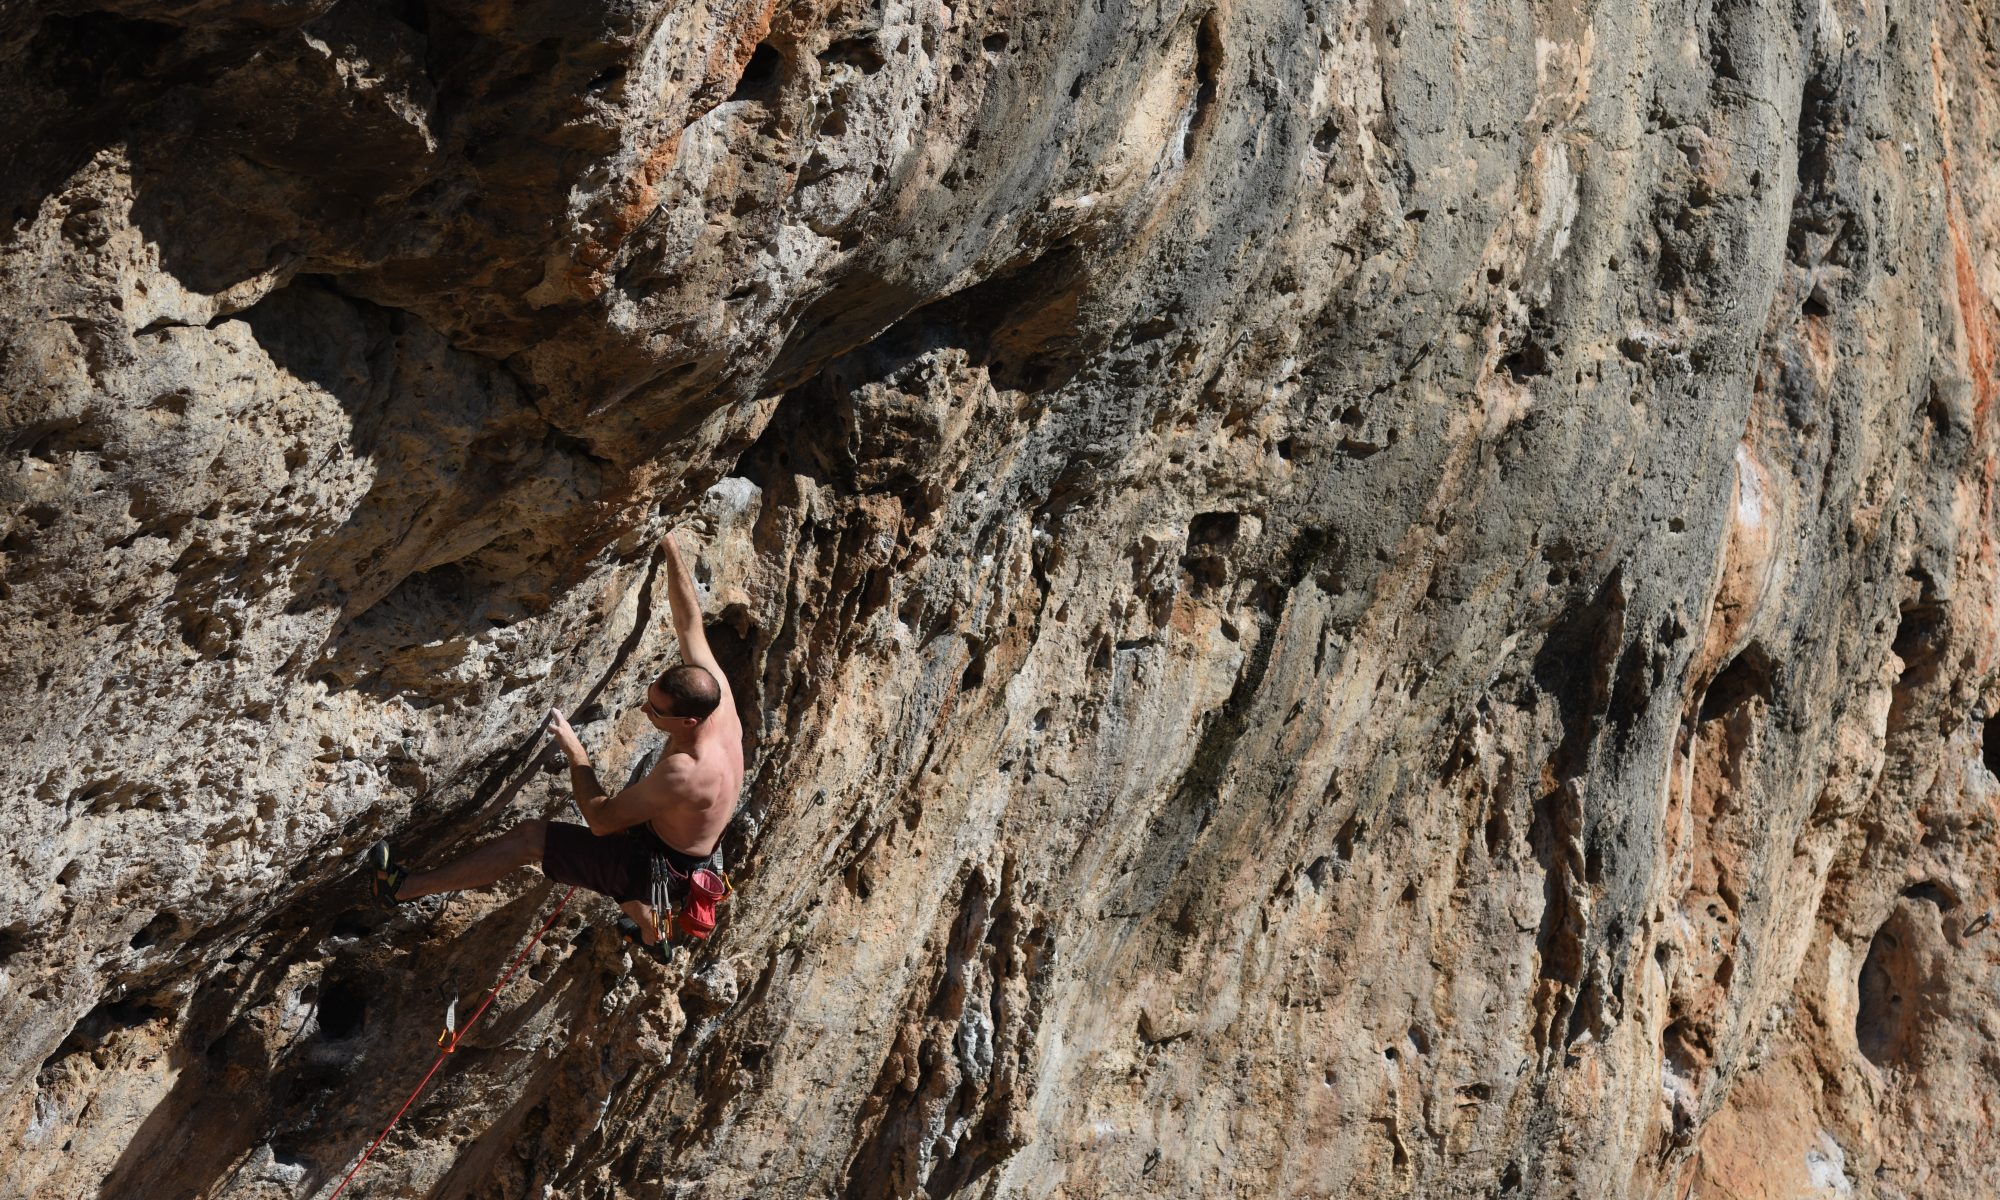 Blaniulus gluttulatus a tricky and demanding 7a at Sector Hydrualics at Gandia.